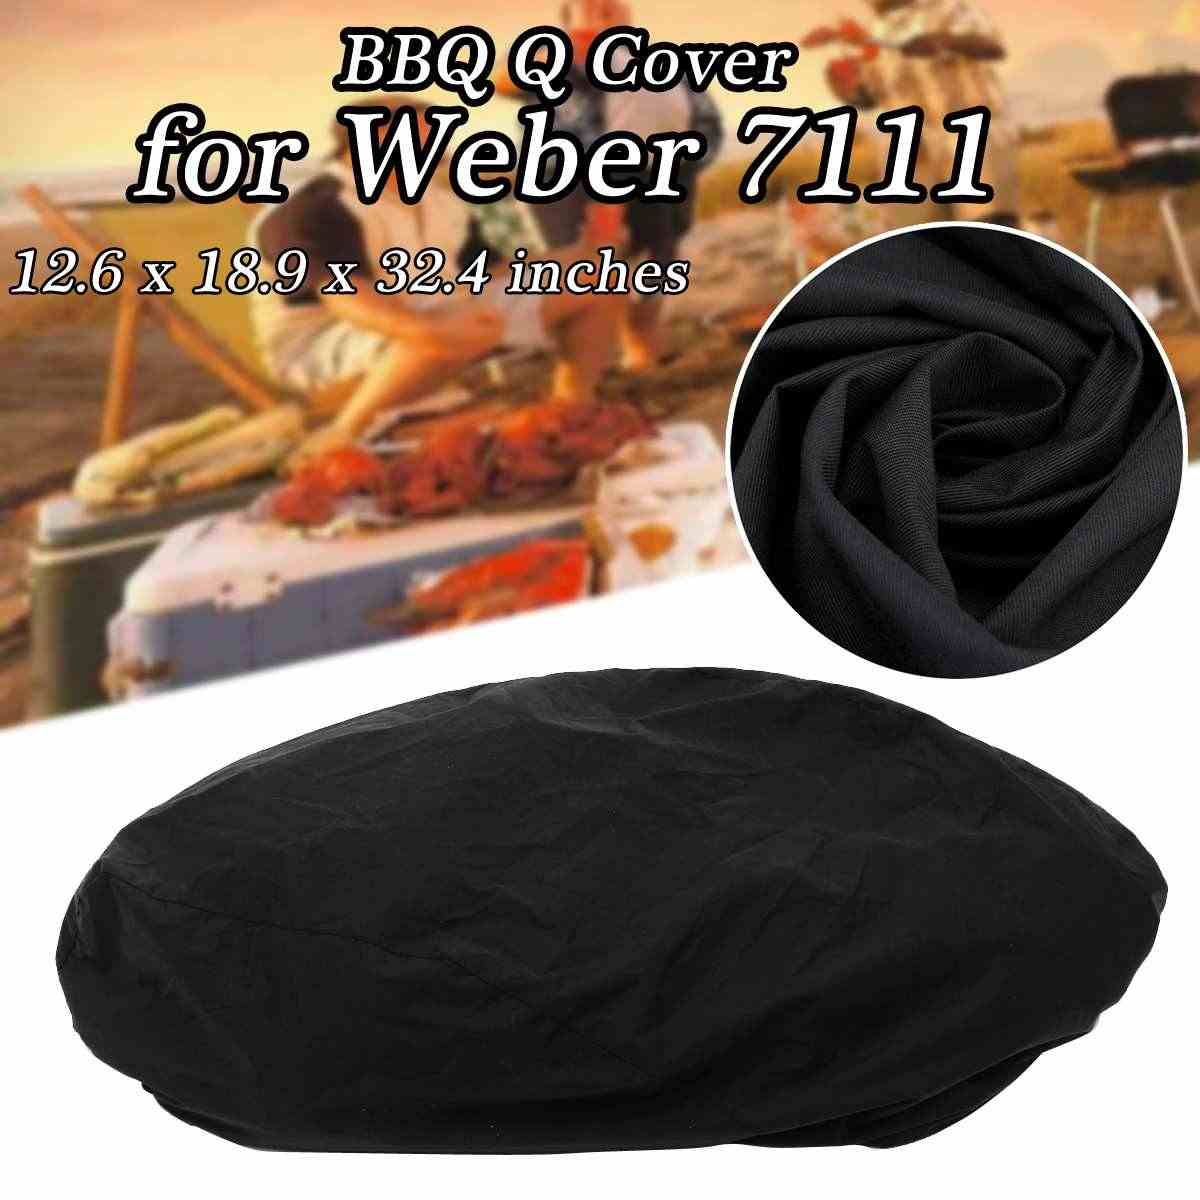 12.6x18.9x32.4 inch Waterproof BBQ Cover Accessories Grill Cover Anti Dust Rain Gas Charcoal Barbeque Grill for Weber 7111 Black